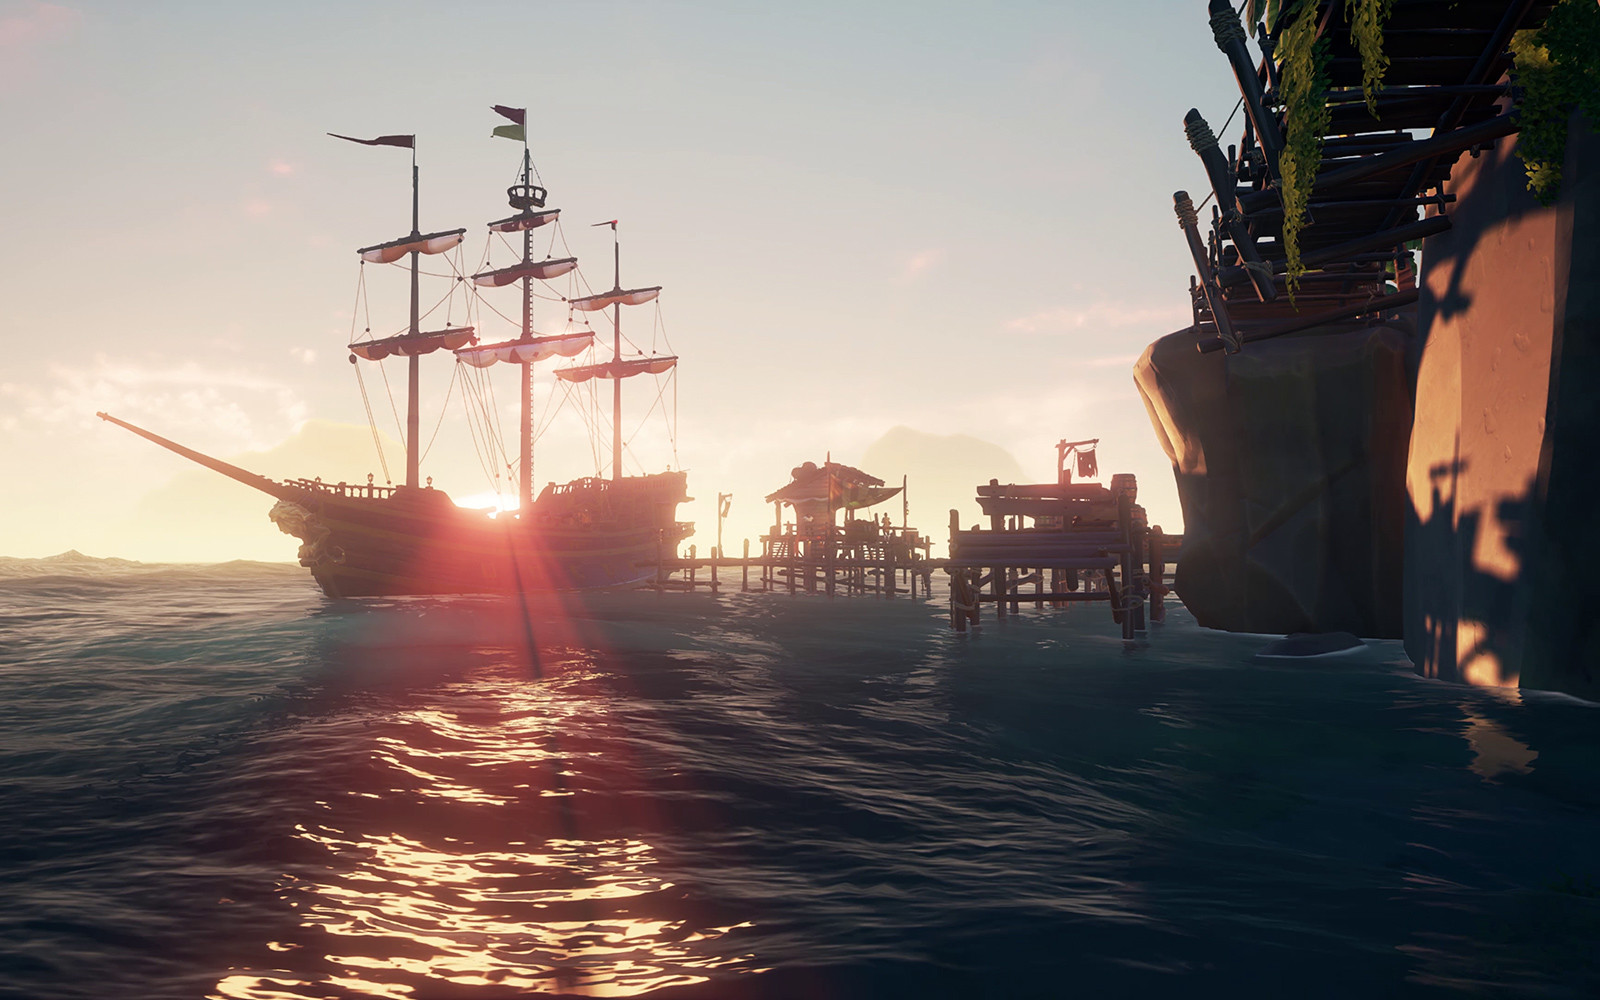 Sea of Thieves closed beta is extended for two more days